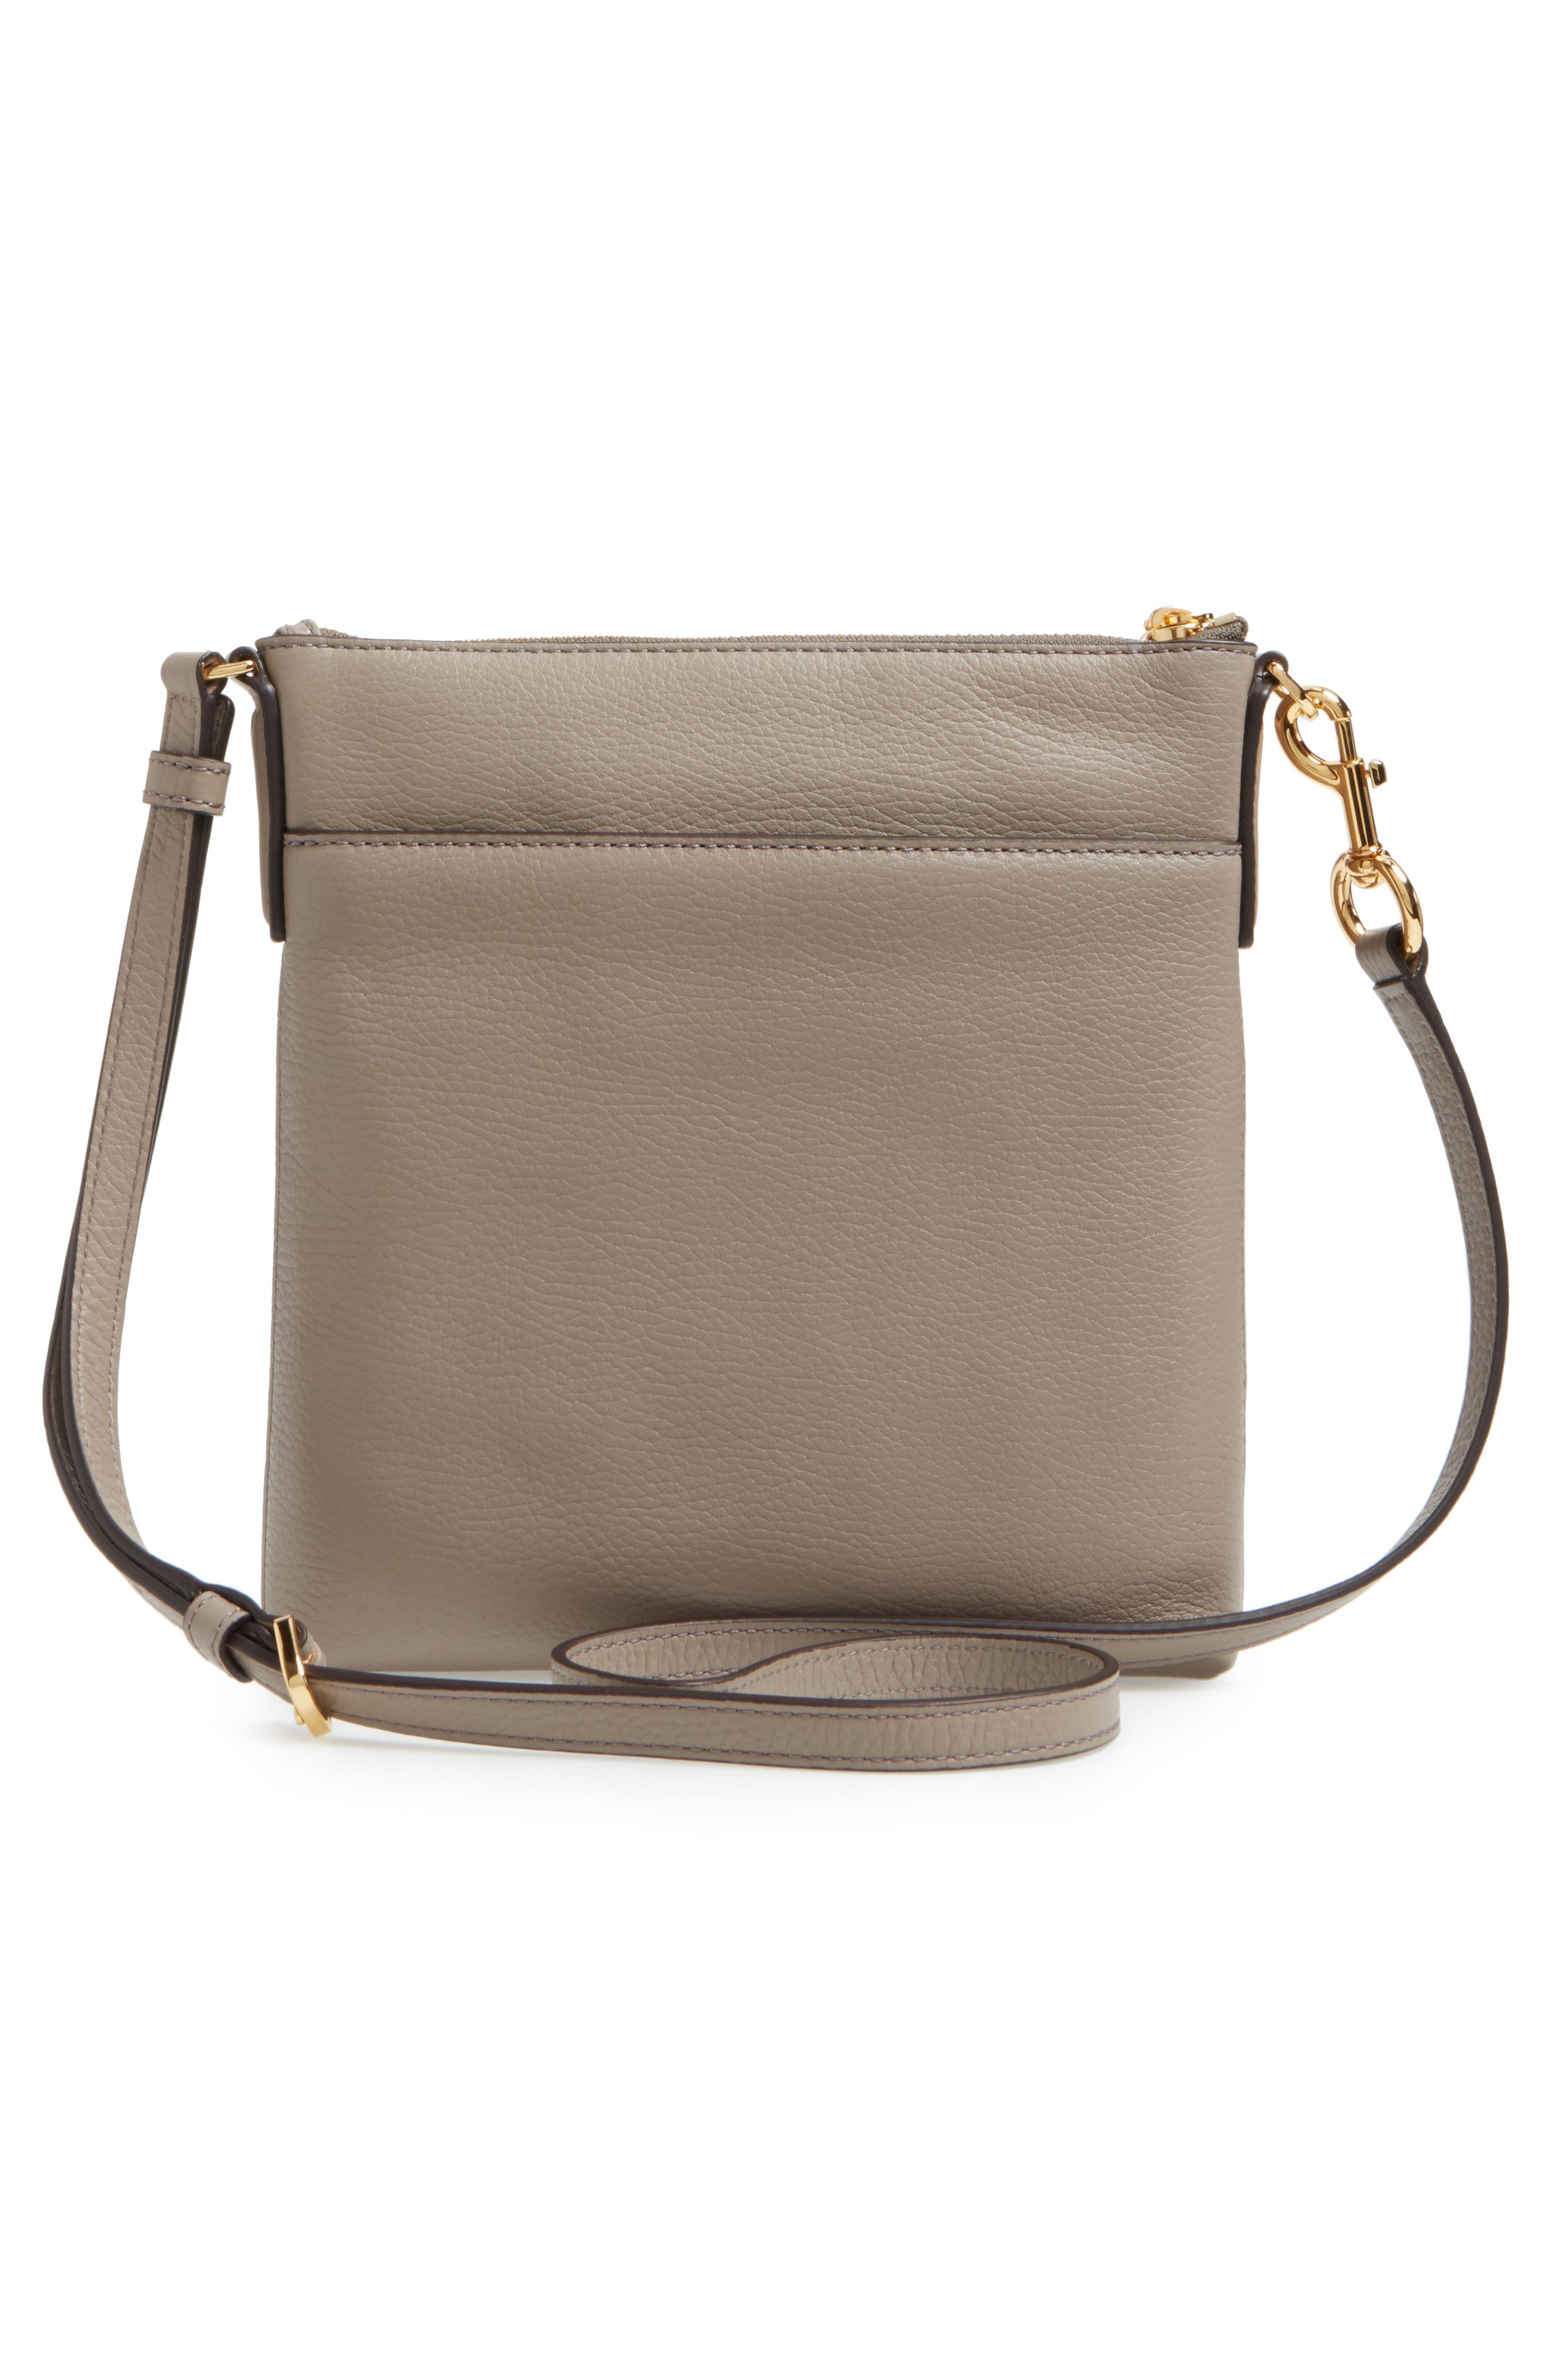 Recruit North/South Leather Crossbody Bag,                             Alternate thumbnail 3, color,                             Mink